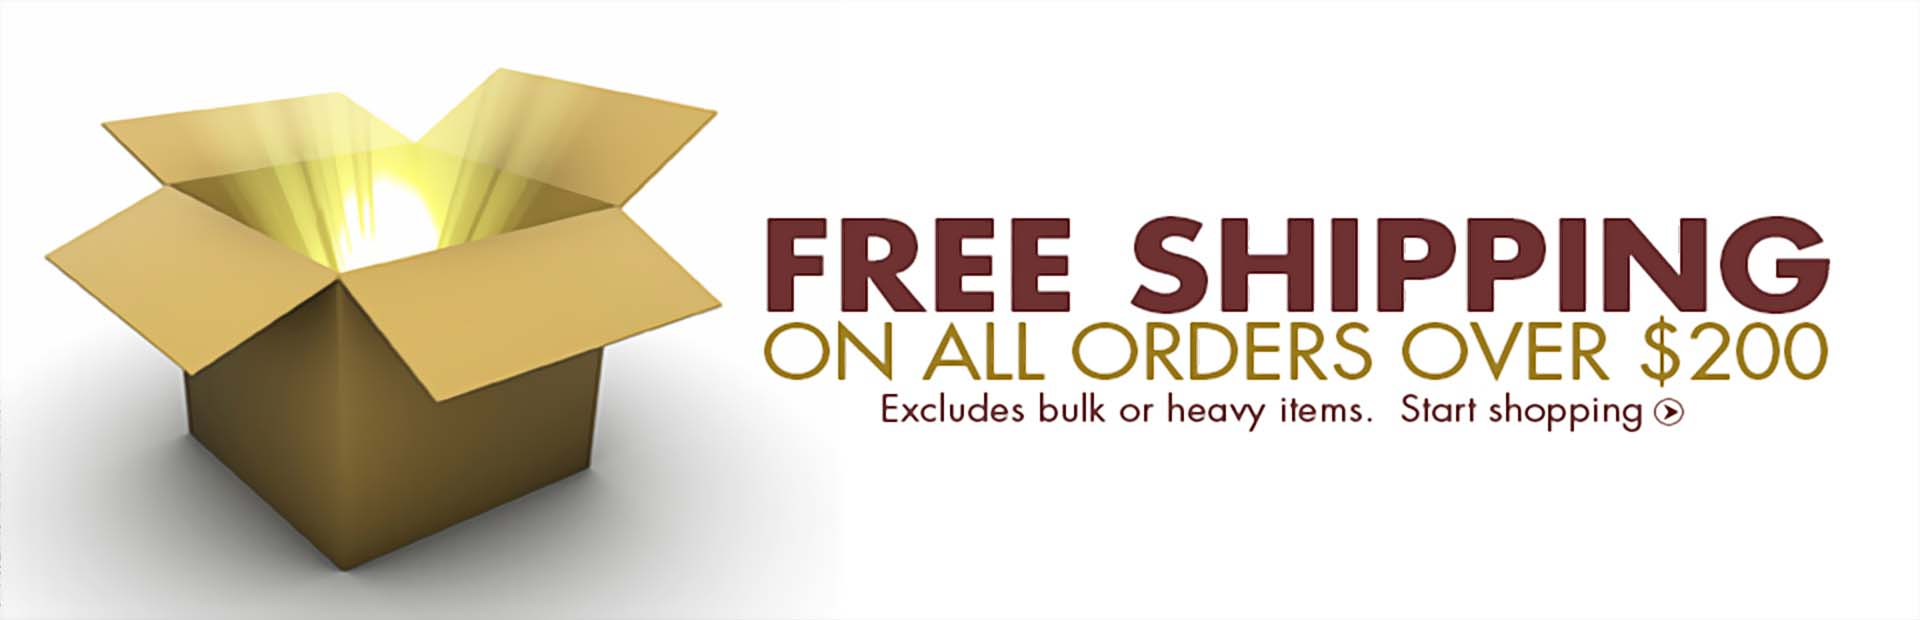 Get free shipping on all orders over $200! Offer excludes bulk or heavy items. Click here to start shopping.